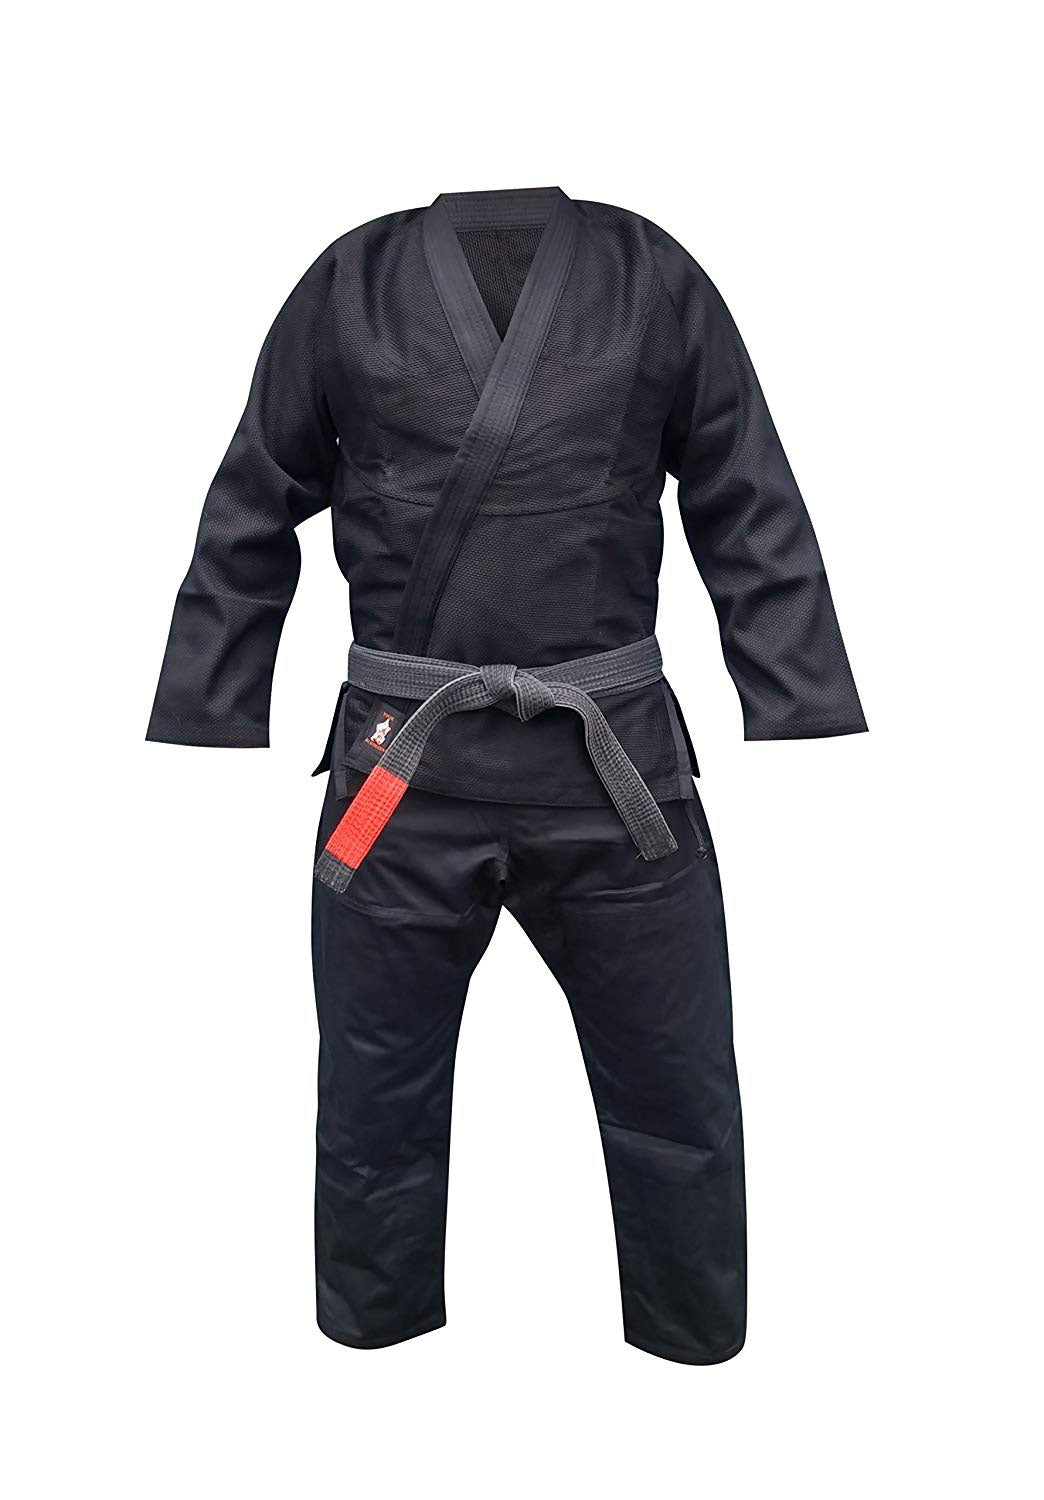 Your Jiu Jitsu Gear Brazilian Jiu Jitsu Premium 450 Uniform Black